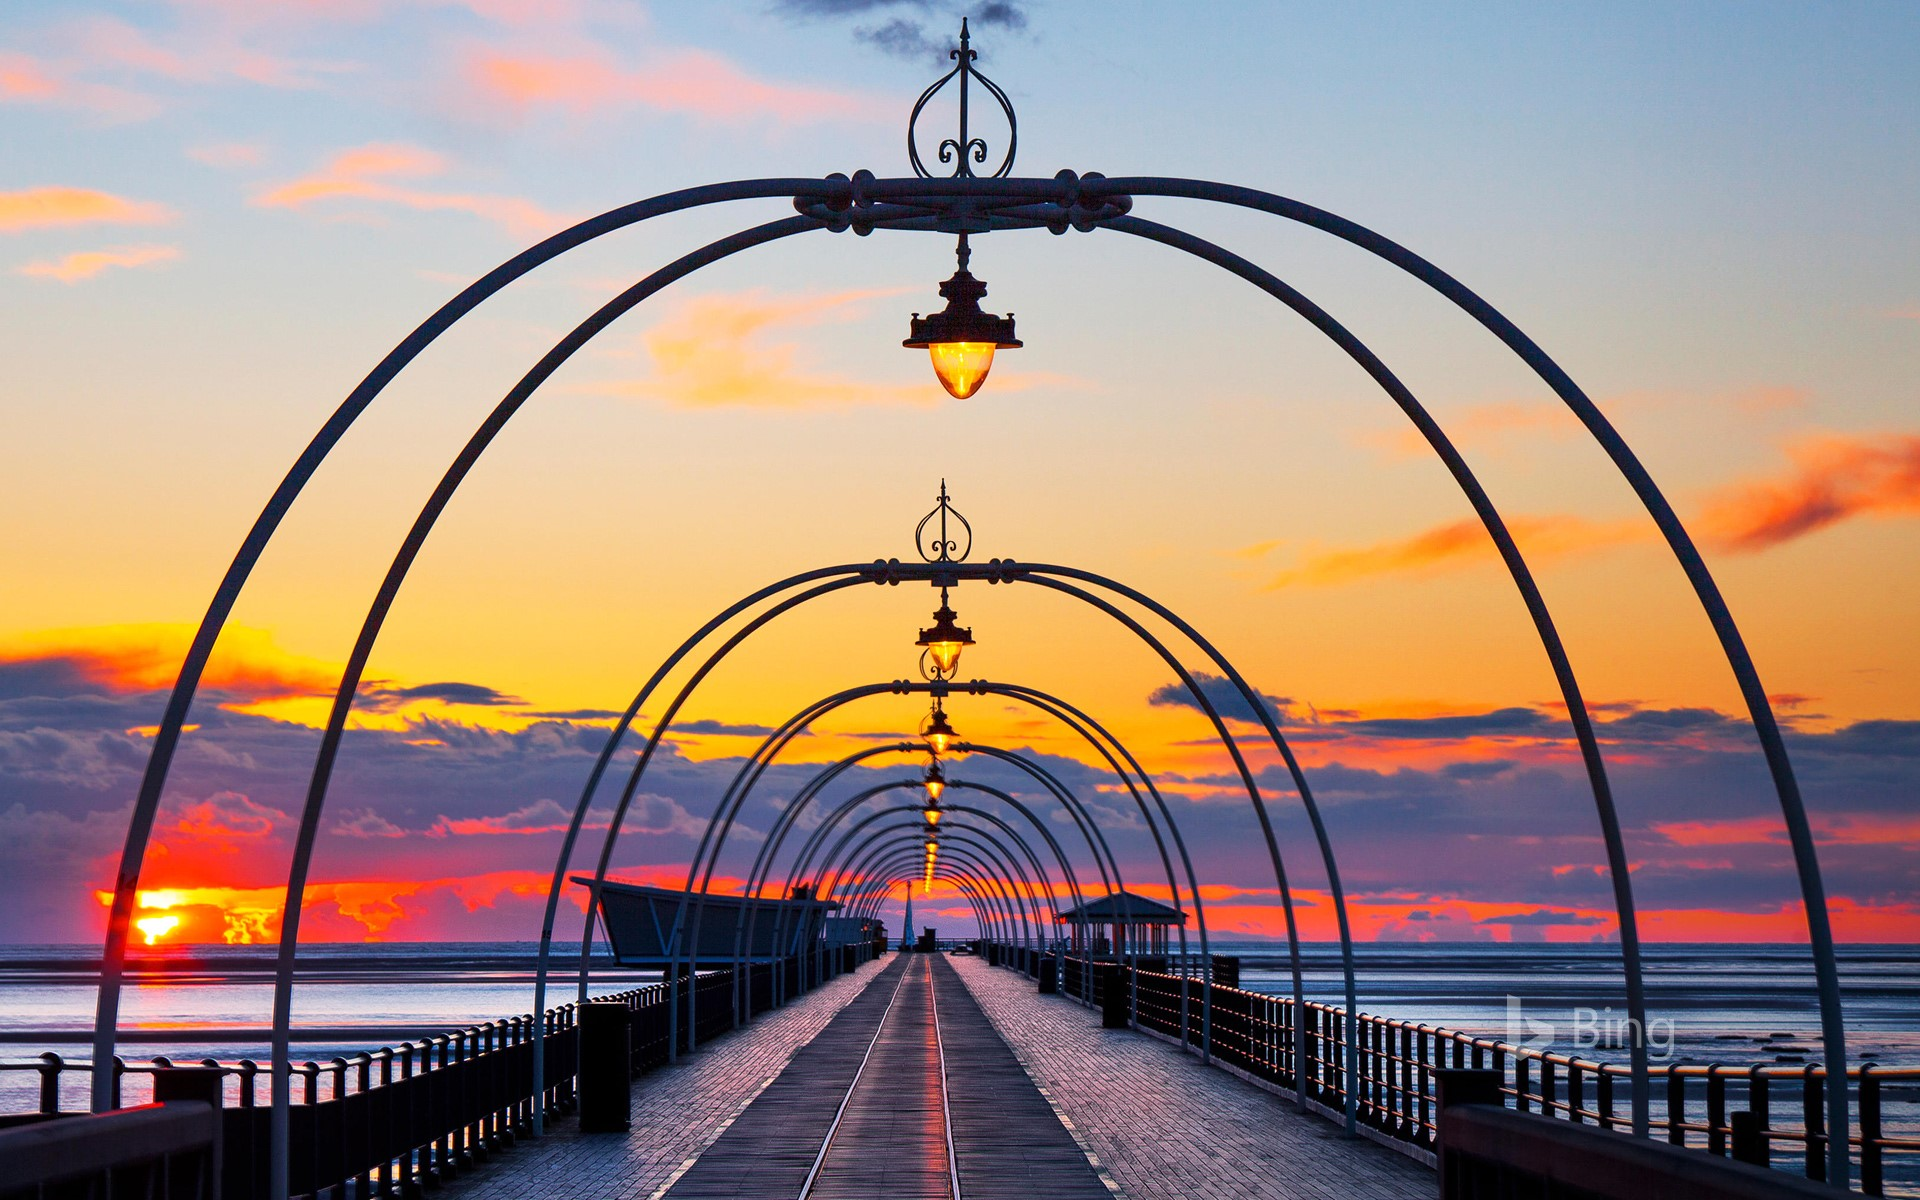 Sunset over Southport Pier, Merseyside